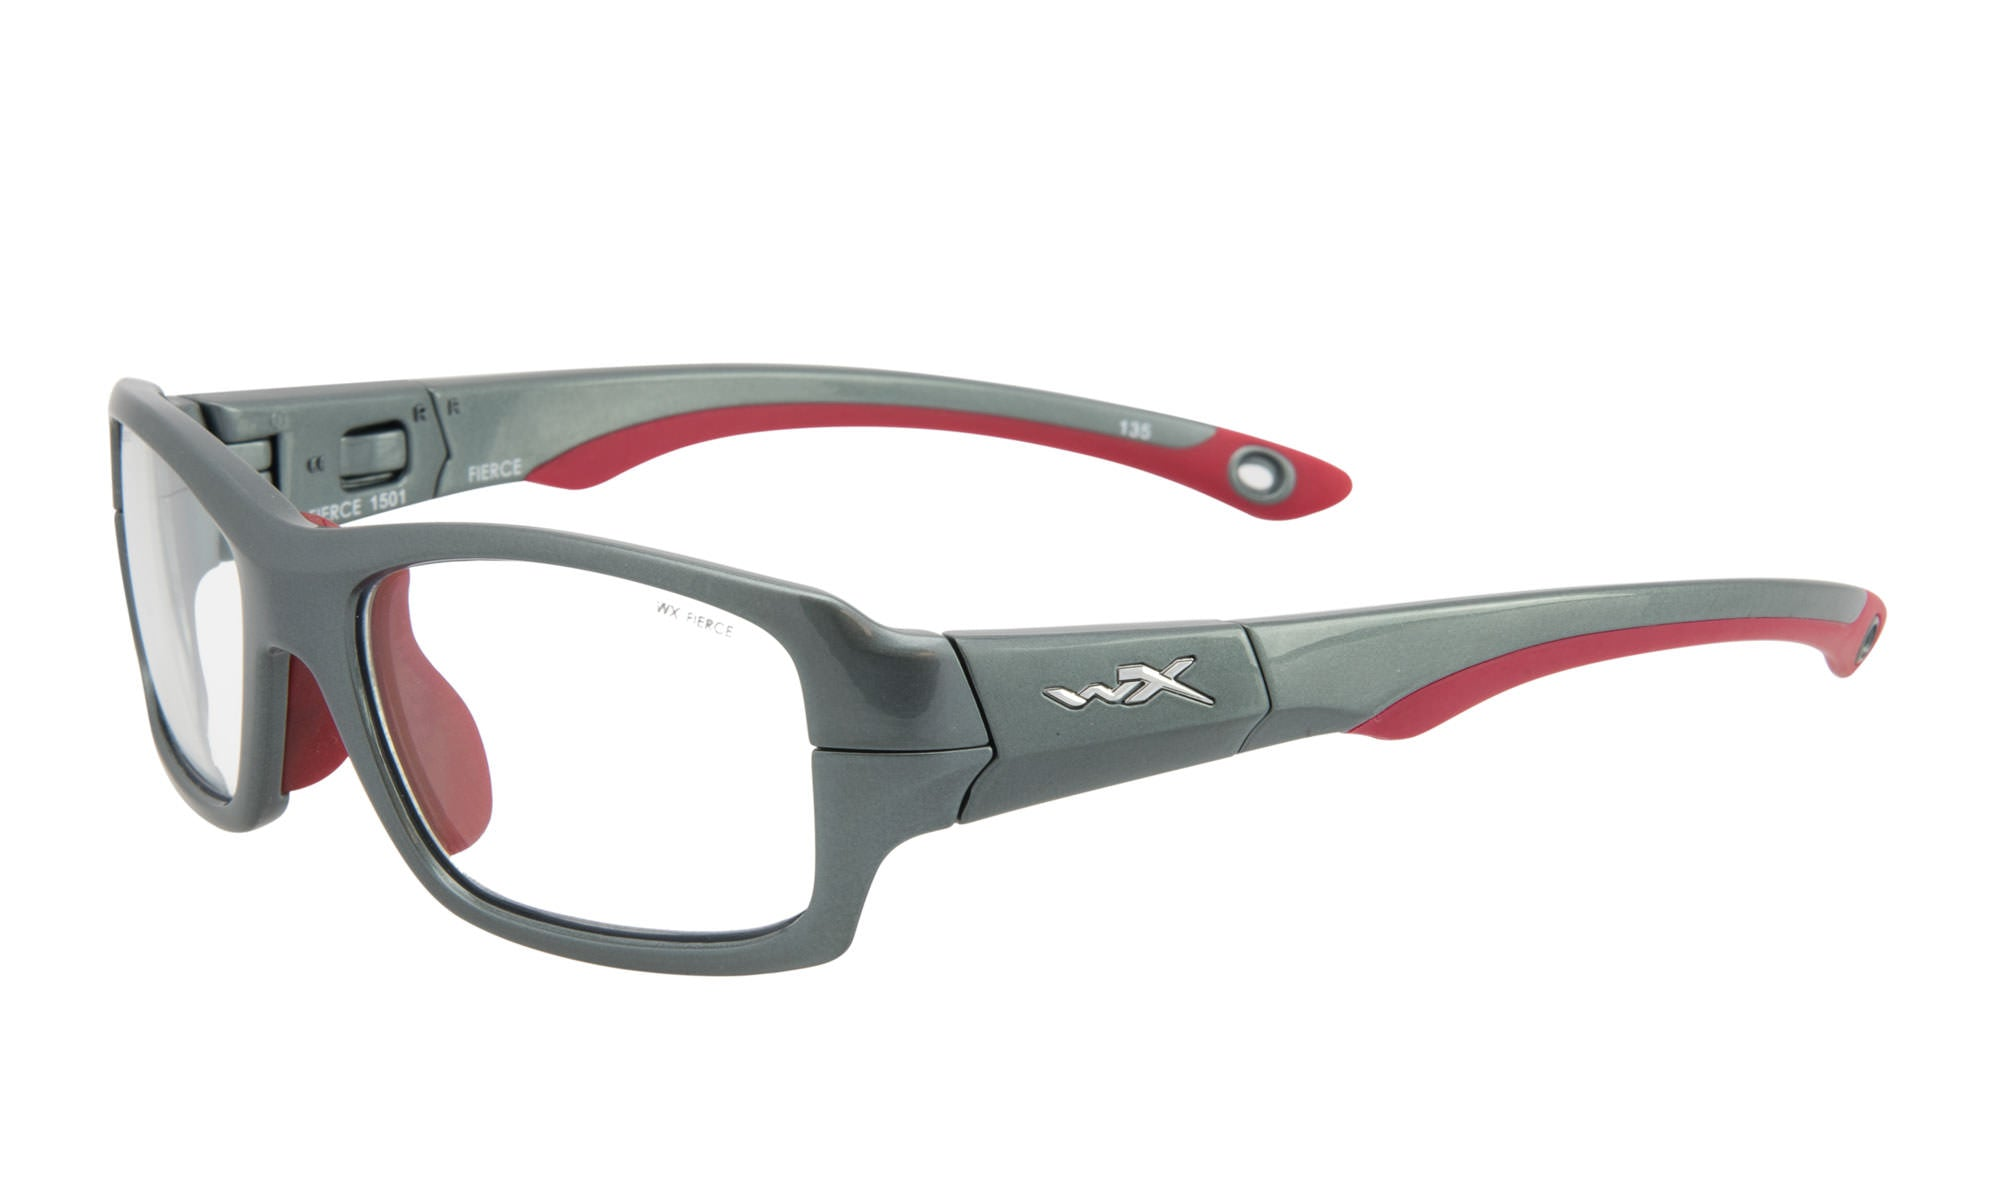 WILEY X YOUTH SUNGLASSES - WX FIERCE (2 OPTIONS)